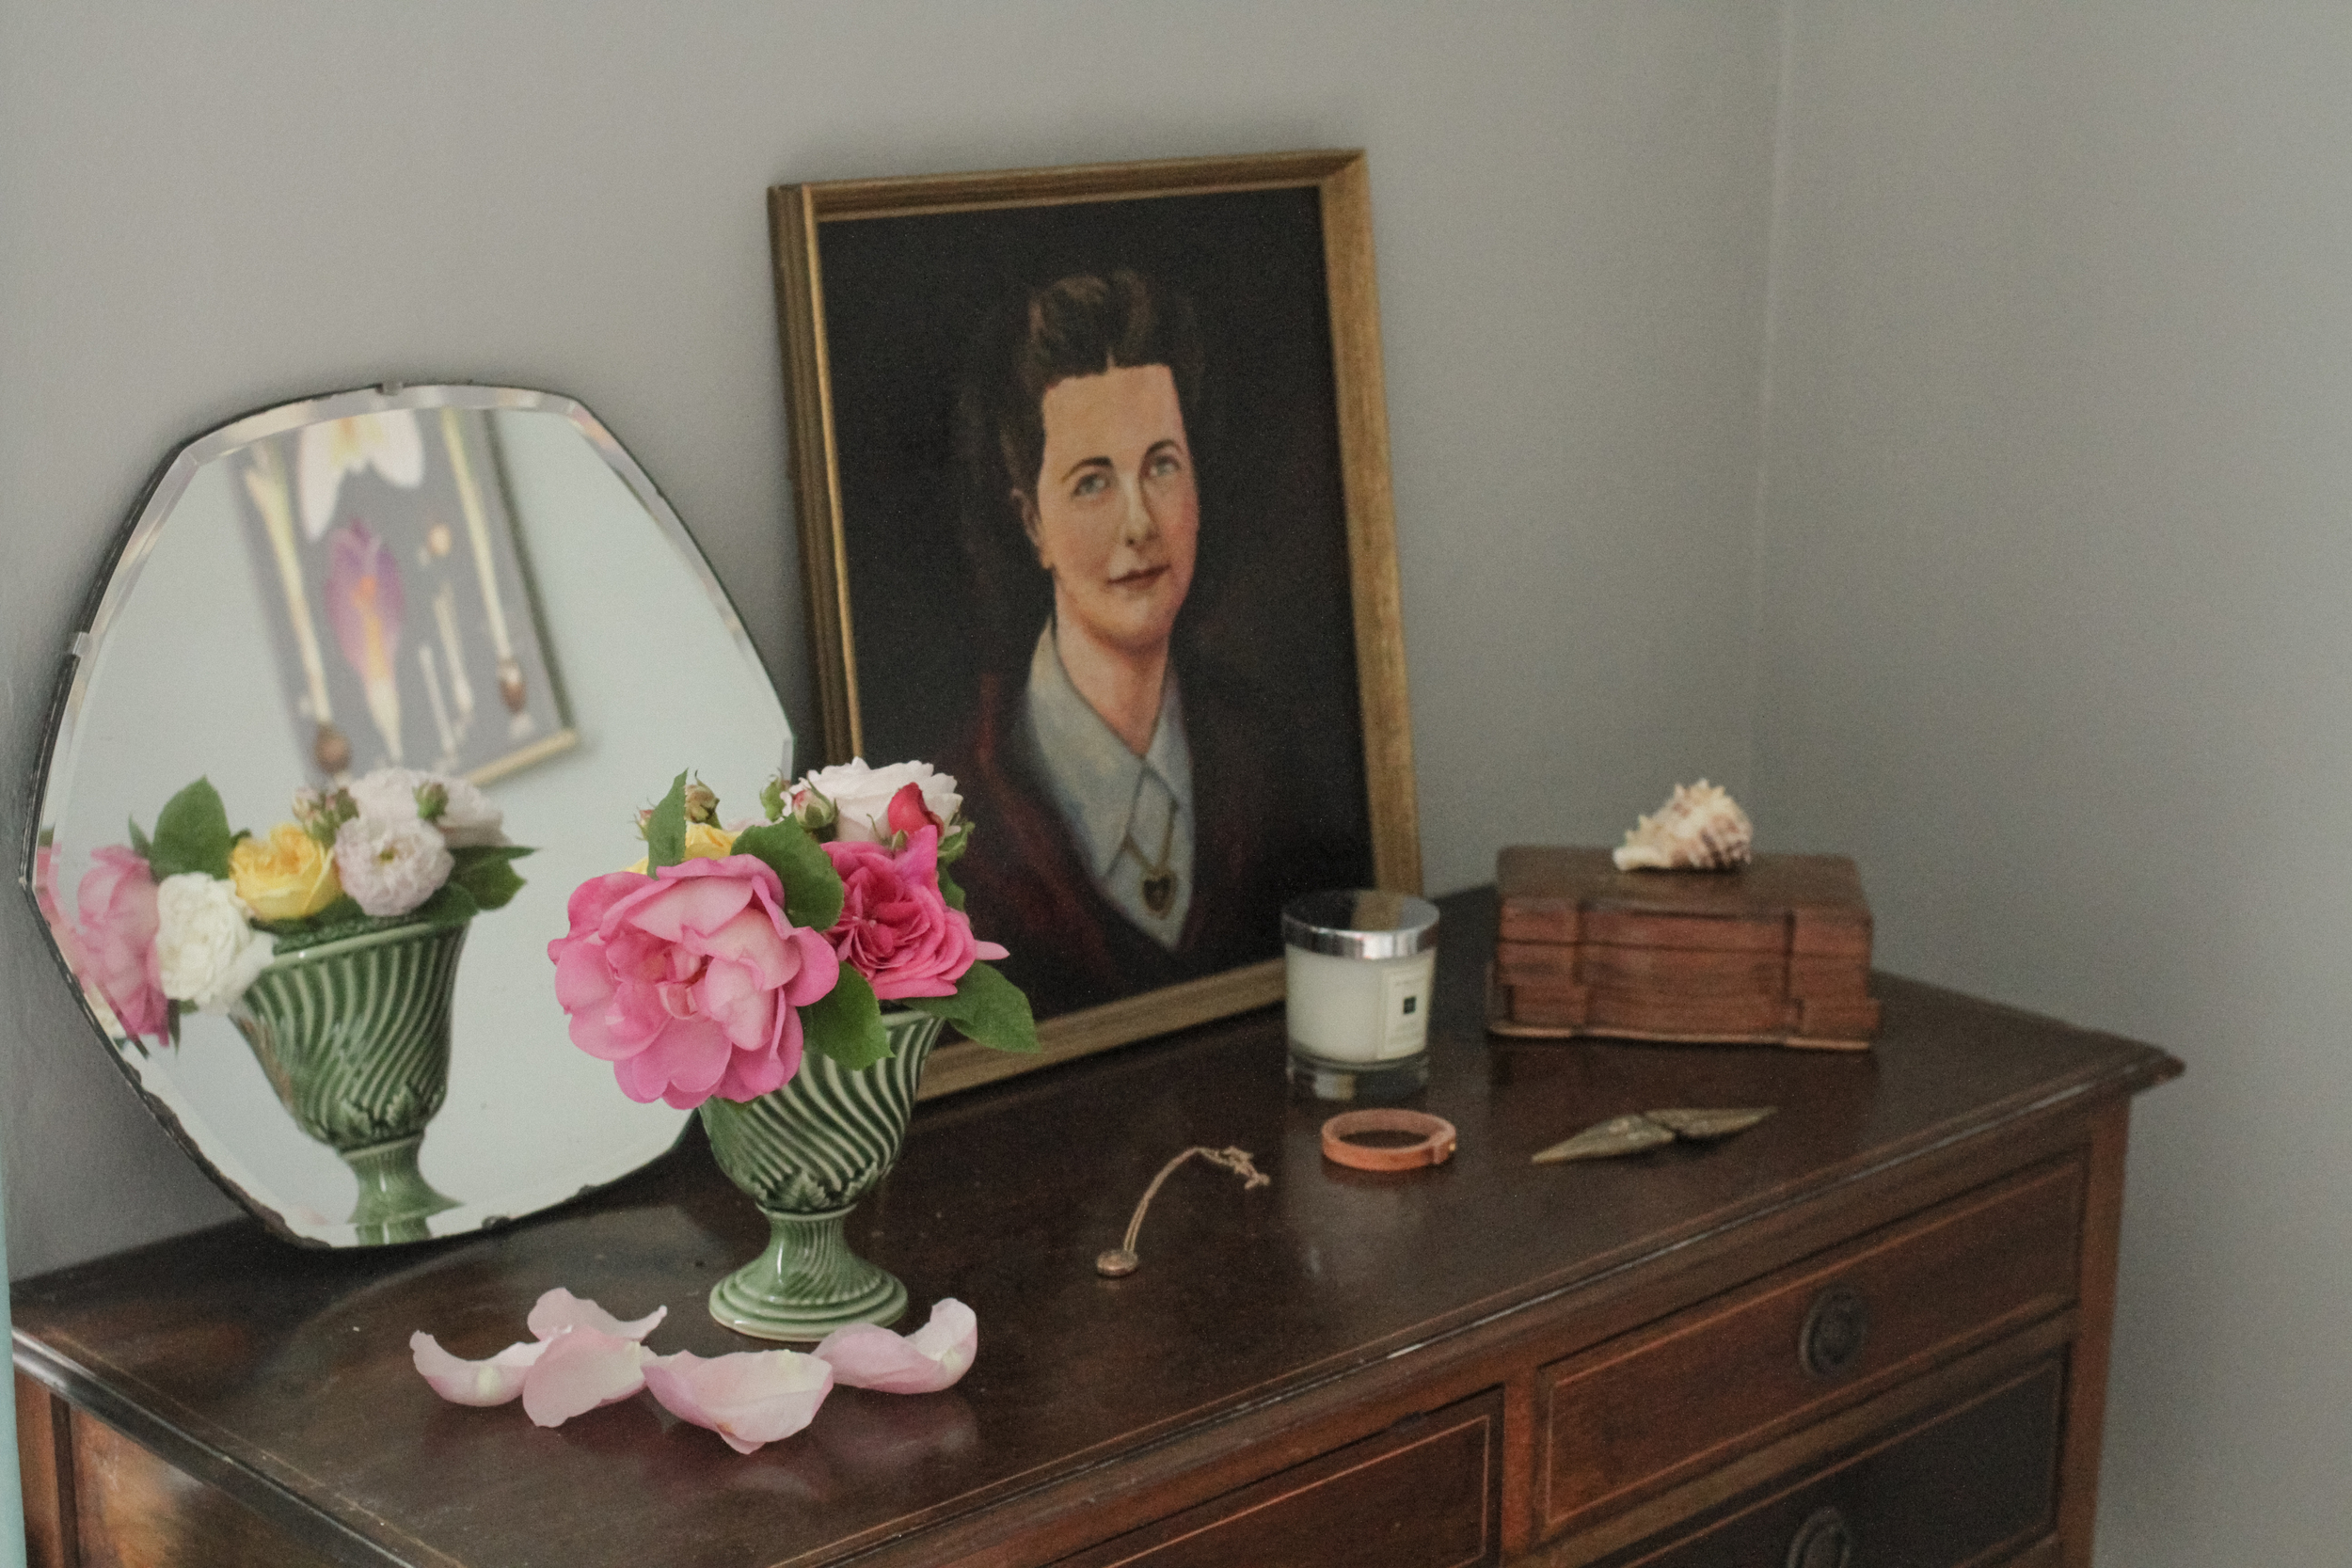 Image by Laura Pashby of Lou Archell's home